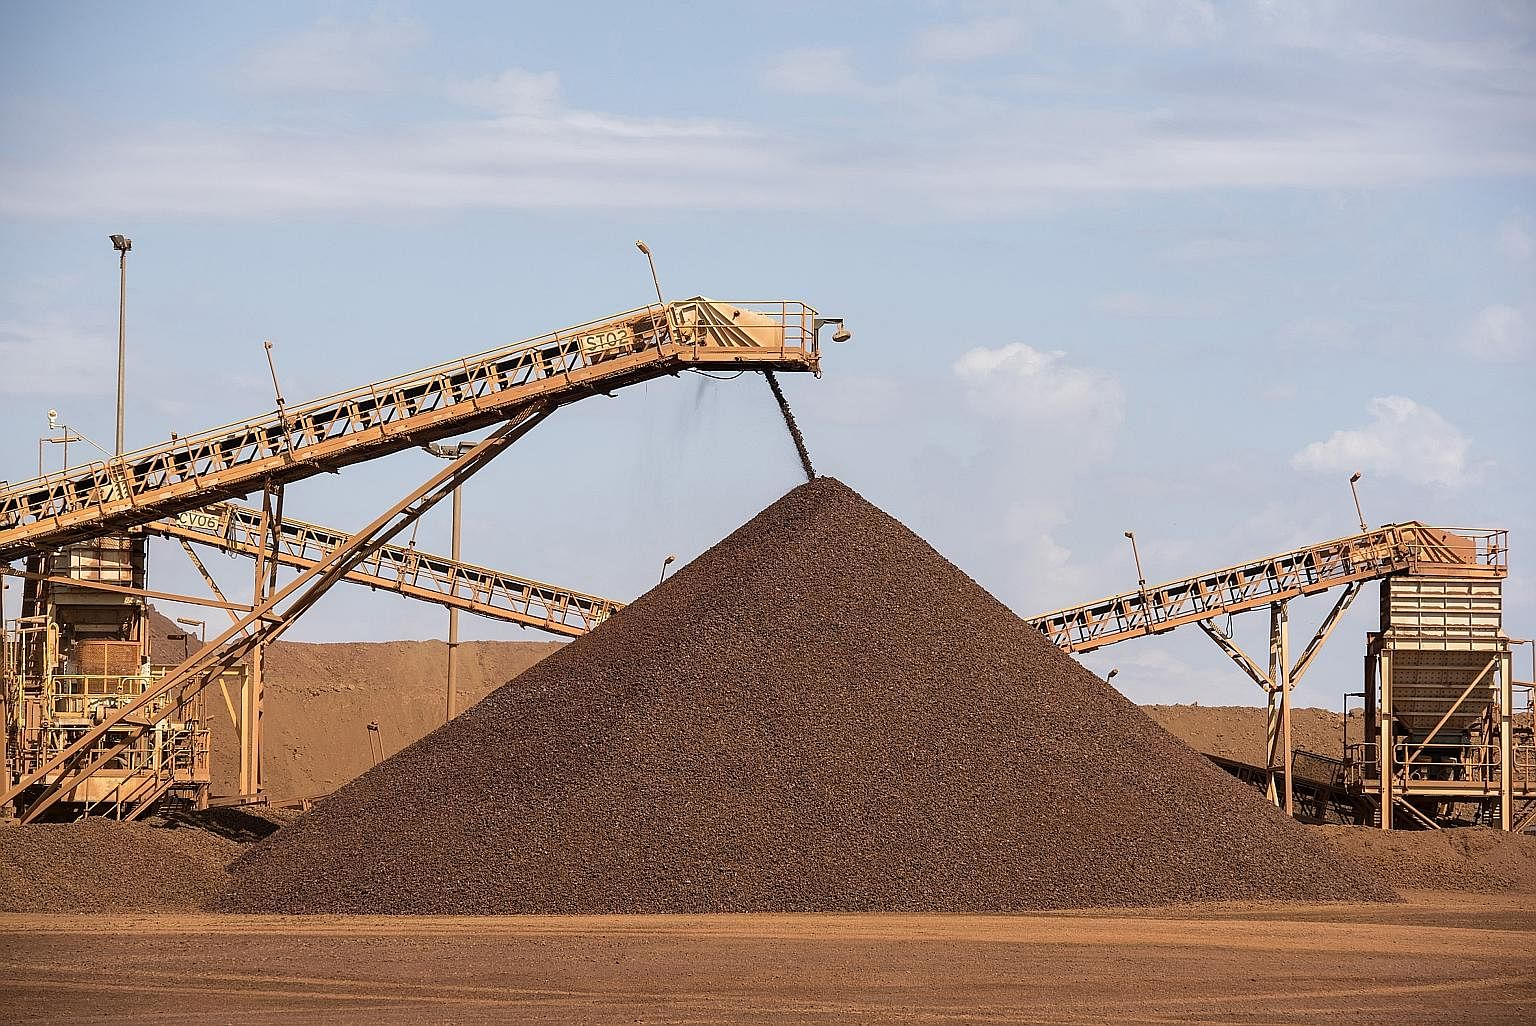 Fragmenting rock by blasting in an iron ore mine in Western Australia; the ore waiting to be scooped up and transported; enormous trucks delivering iron ore to Port Hedland, a sleepy backwater which became one of the biggest ports in the wo